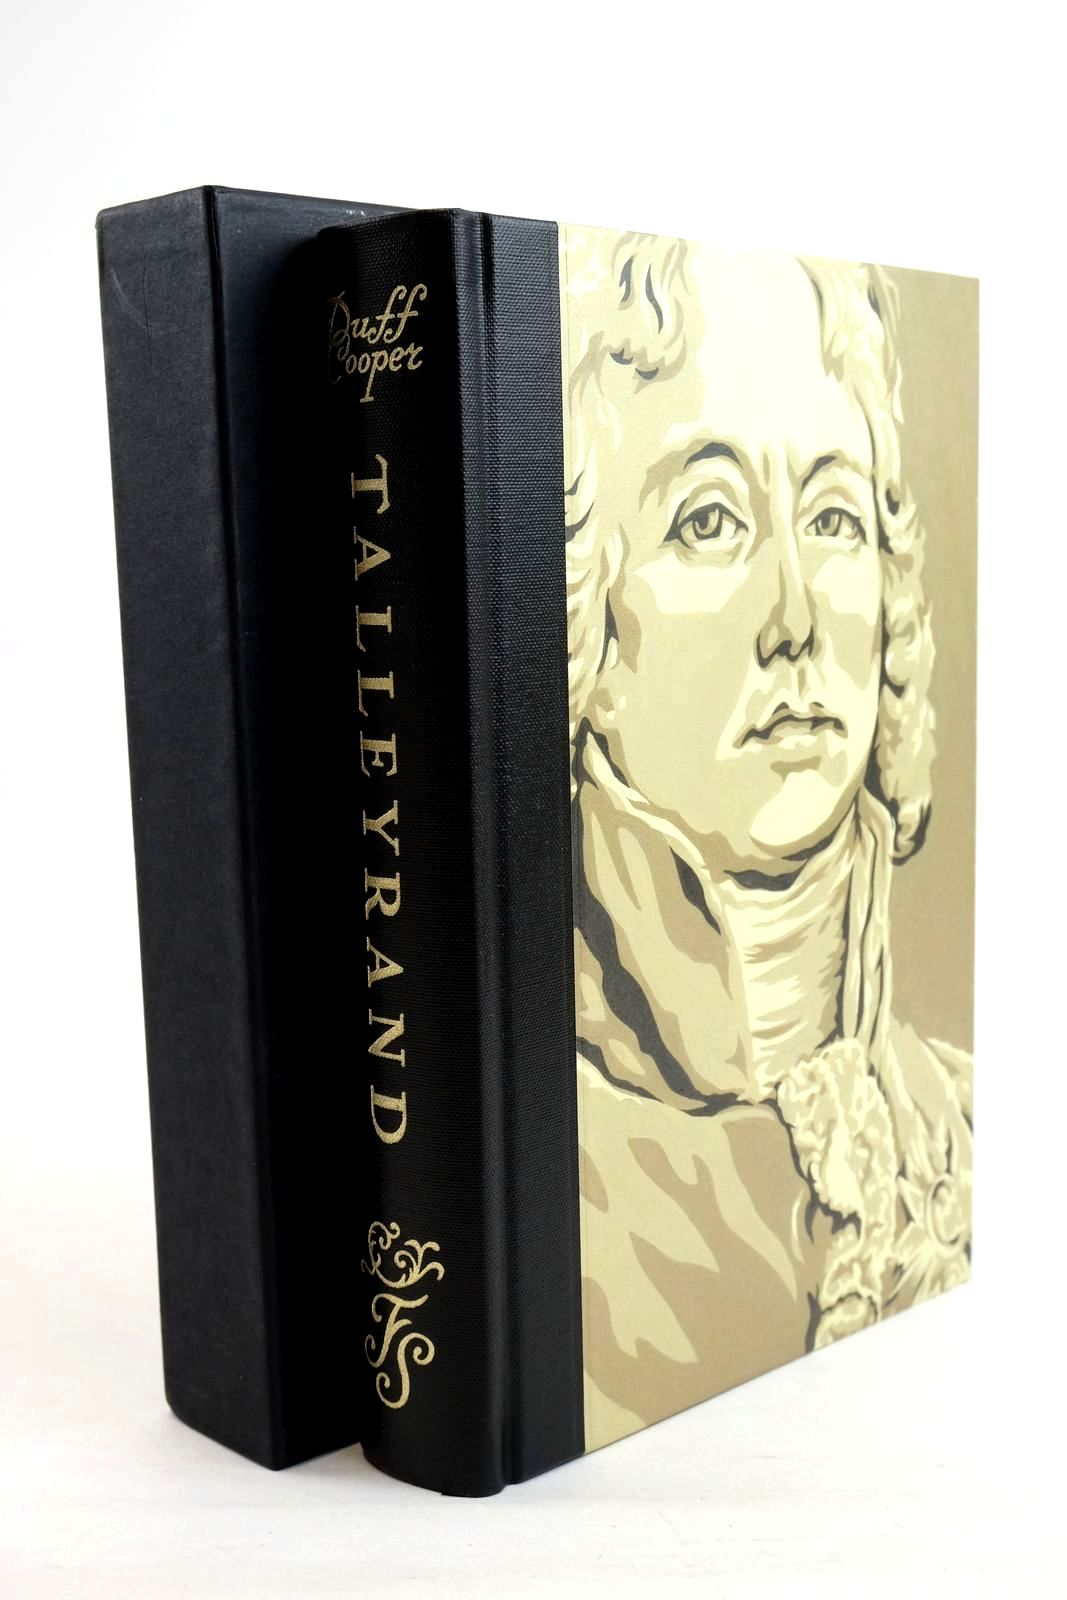 Photo of TALLEYRAND written by Cooper, Duff published by Folio Society (STOCK CODE: 1320495)  for sale by Stella & Rose's Books